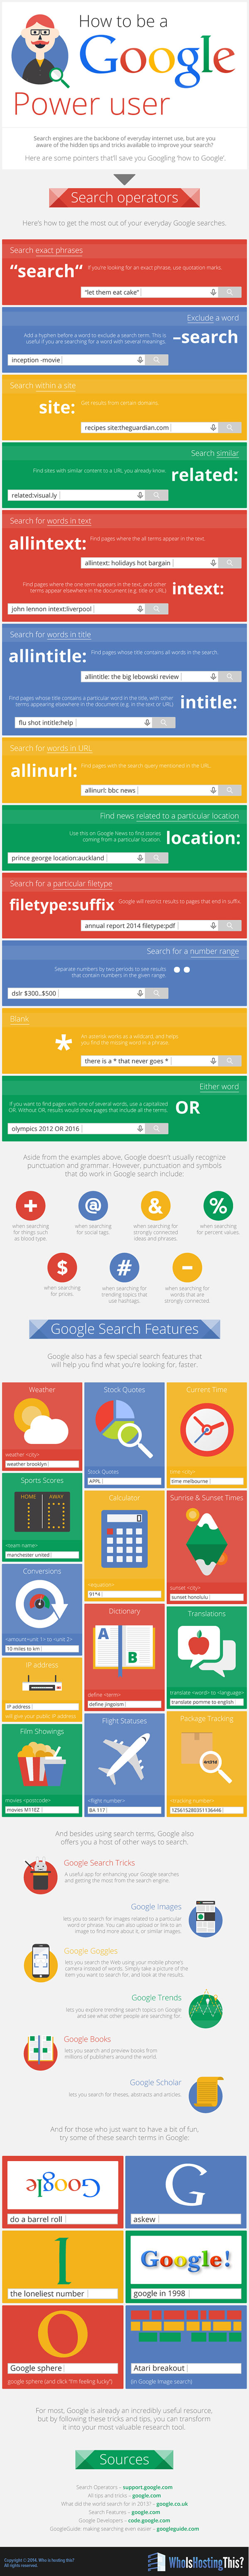 google-tips-infographic - CoachSander.nl